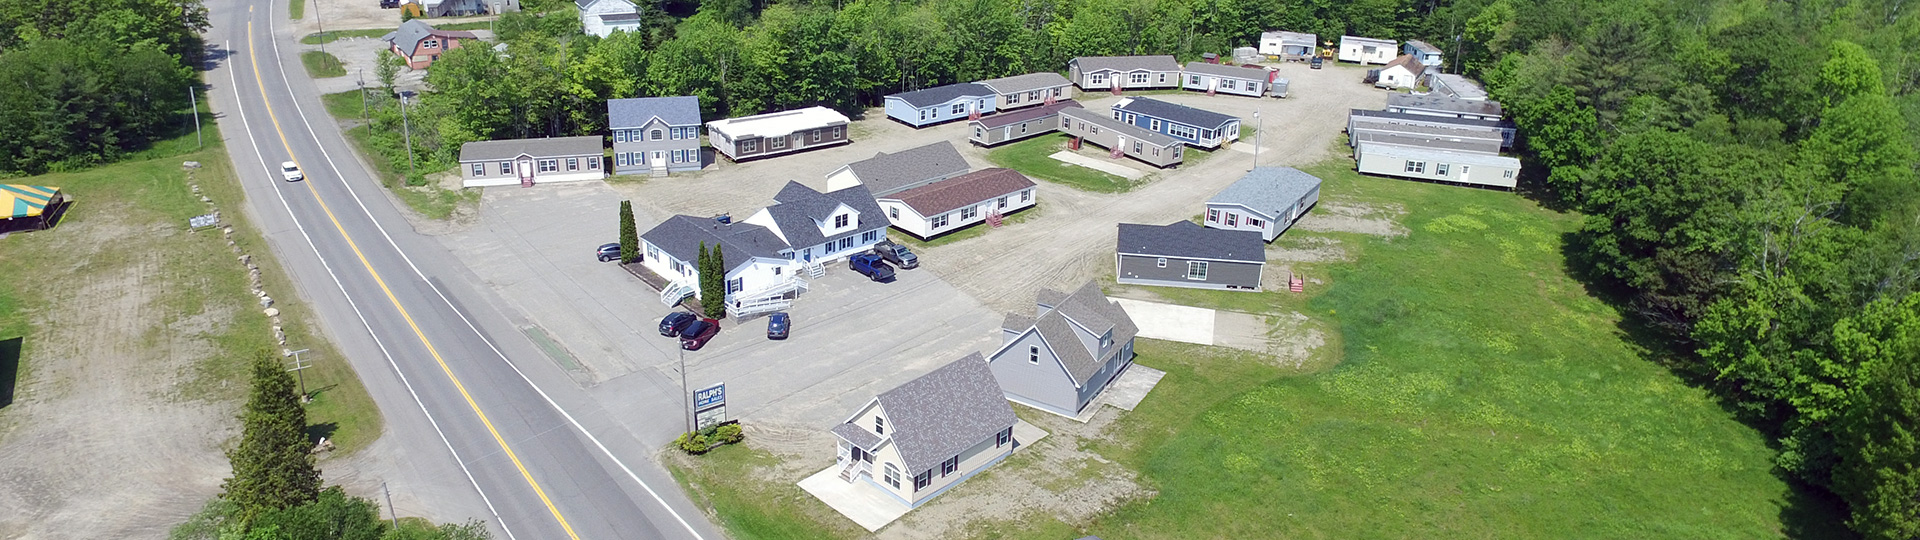 Outstanding Ralphs Homes A Maine Modular Manufactured Home Dealership Download Free Architecture Designs Scobabritishbridgeorg